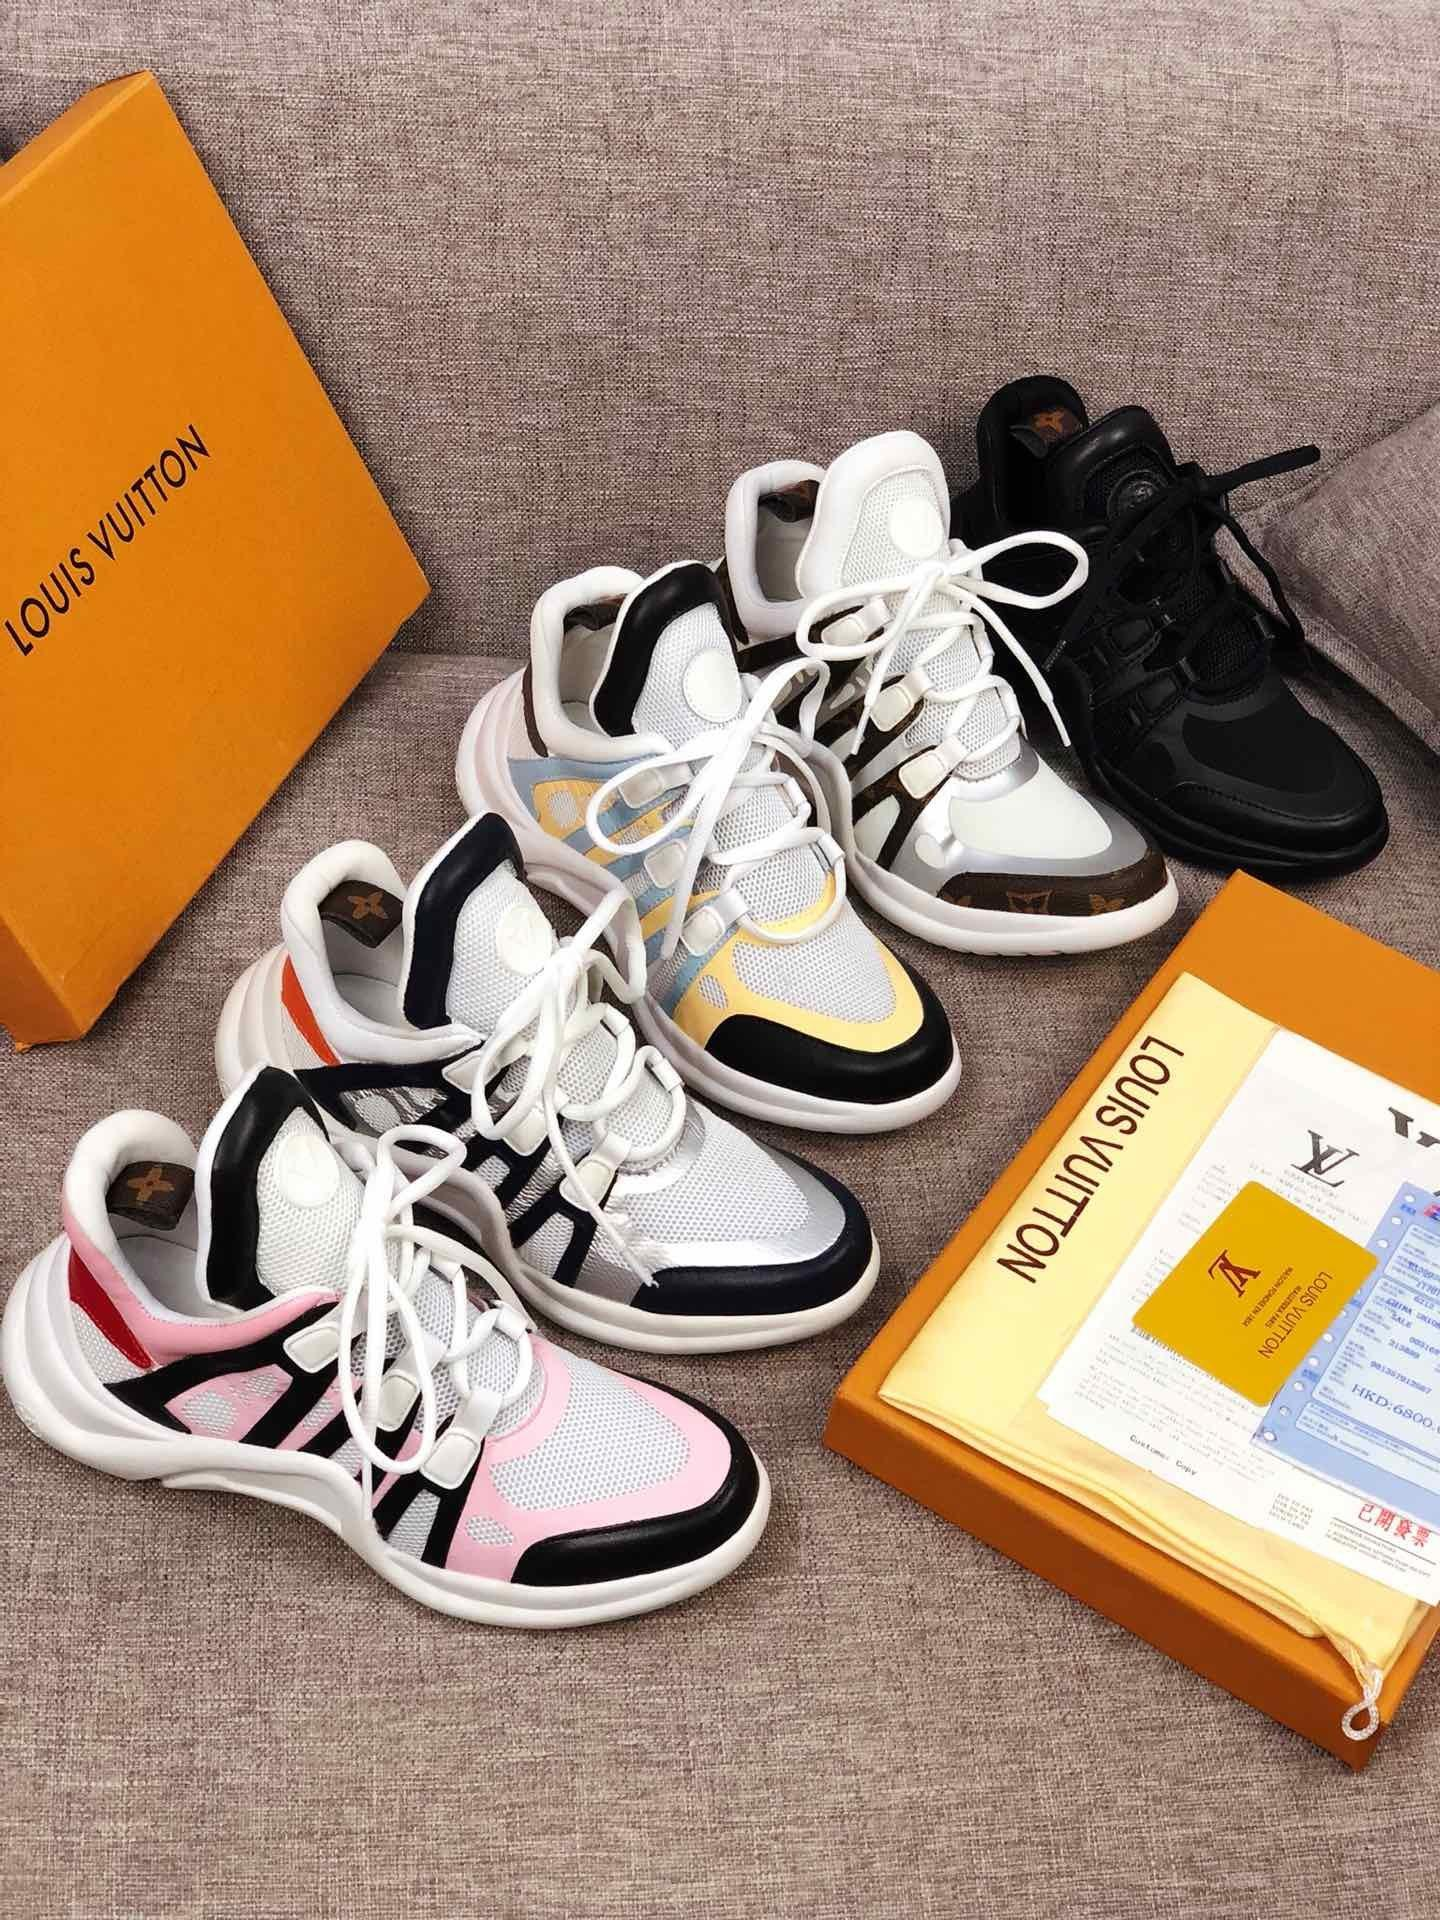 2020 New Presto White Black Mens Designer Shoes For Men Prestos Ultra off Outdoor Fashion Sports Trainers Air Womens Sneakers